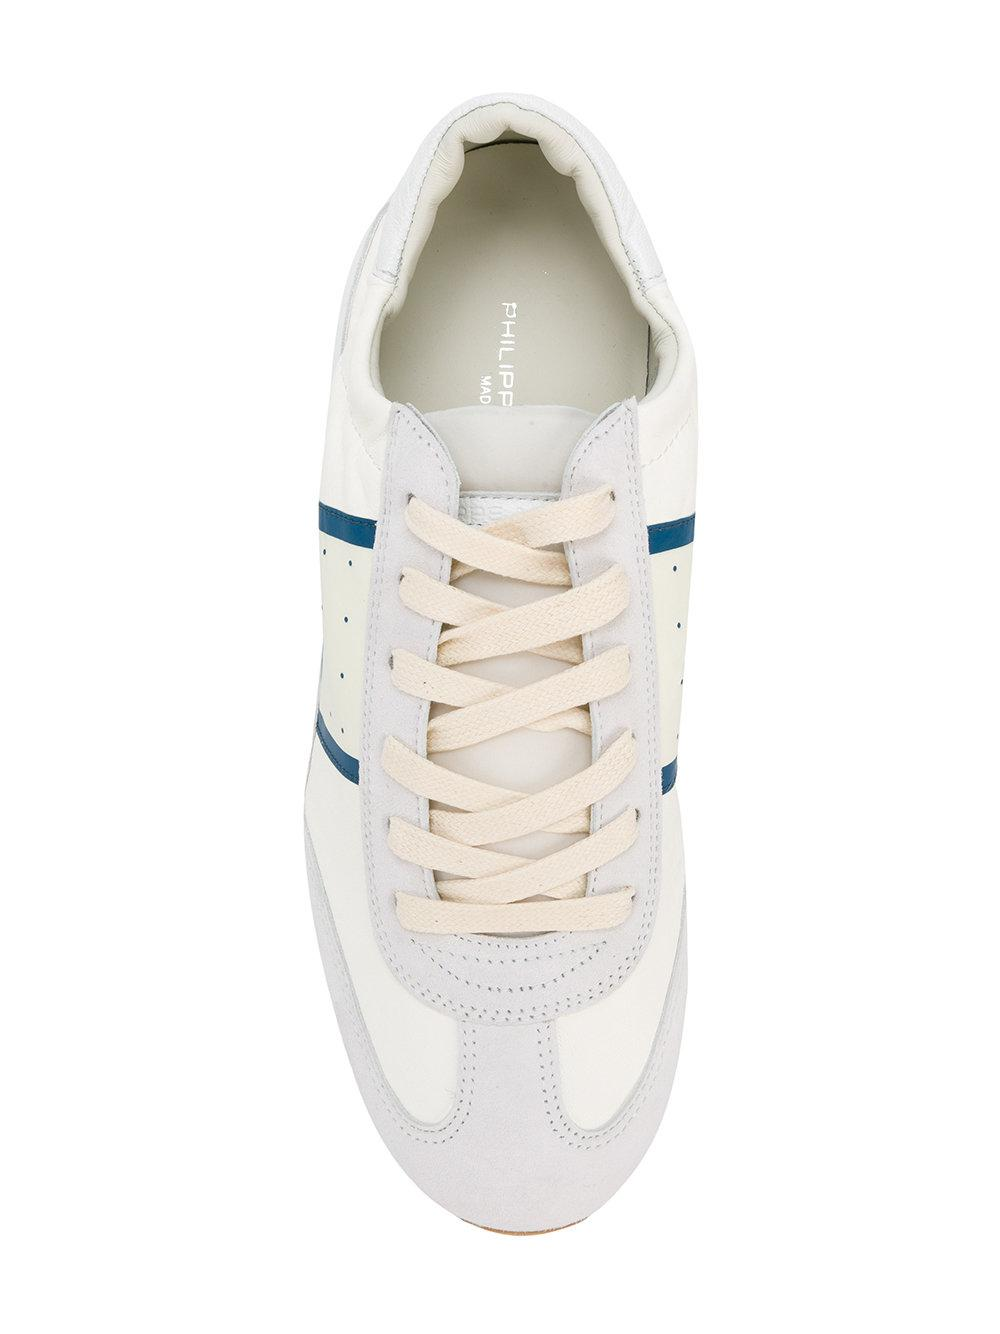 Philippe Model Leather Toujours Sneakers